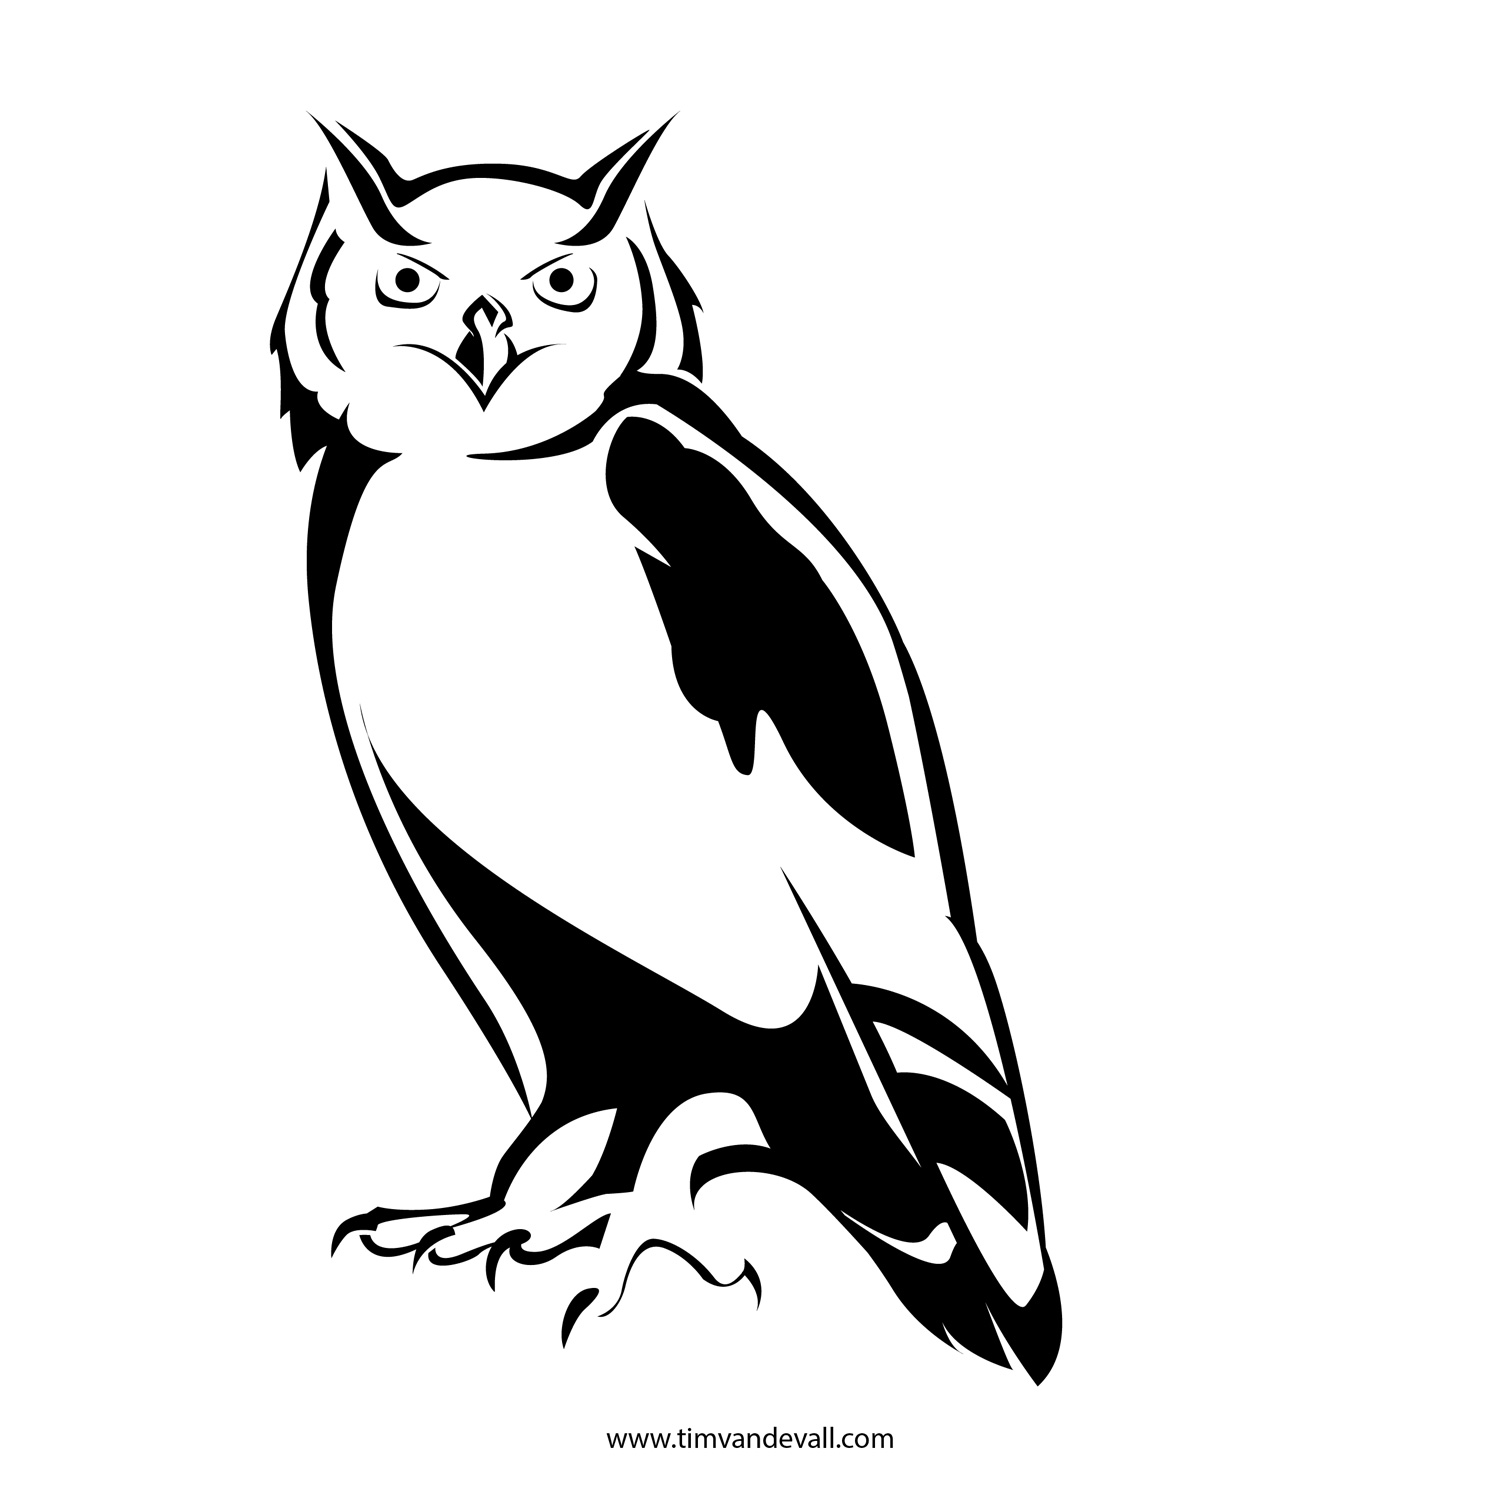 Printable owl stencils - photo#13